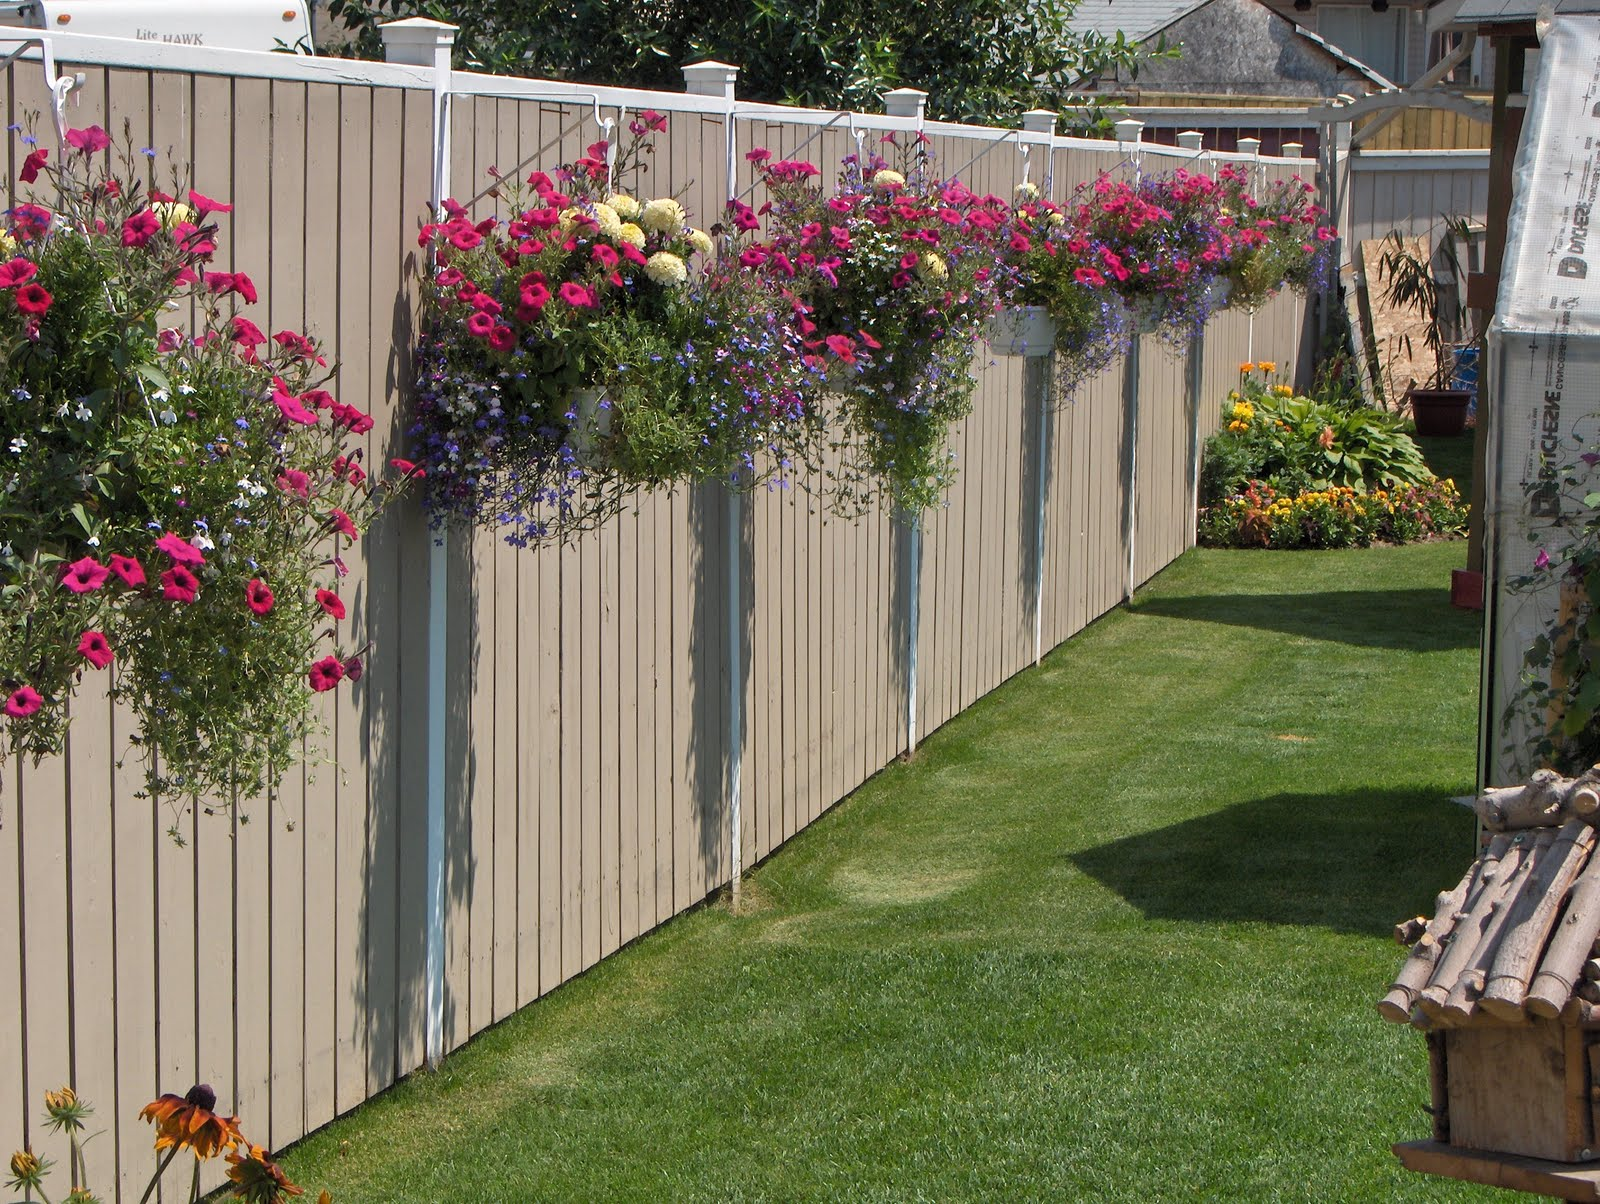 Cool Garden Ideas cool garden designs cadagu com cool garden ideas Cool Diy Ideas To Decorate Your Garden Fence